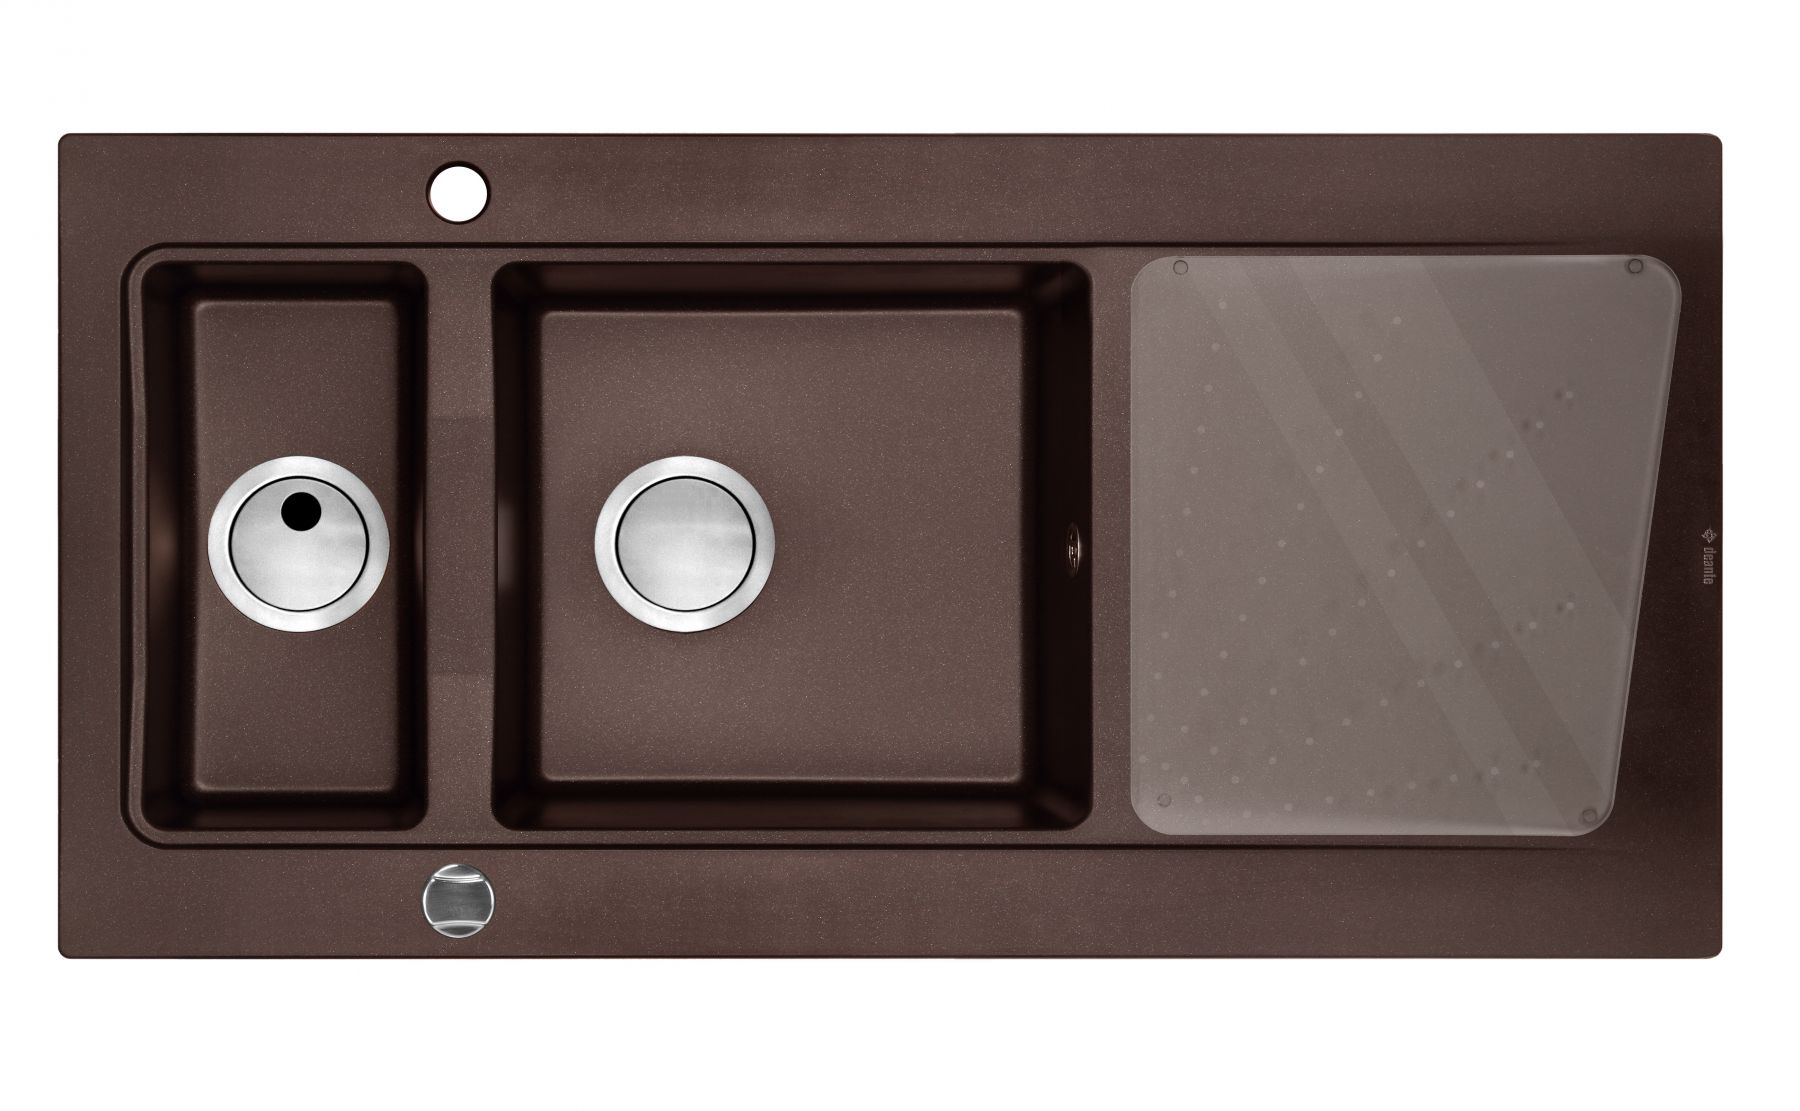 Modern 1.5 Bowl Sink with Drainer Brown Metallic for Kitchen